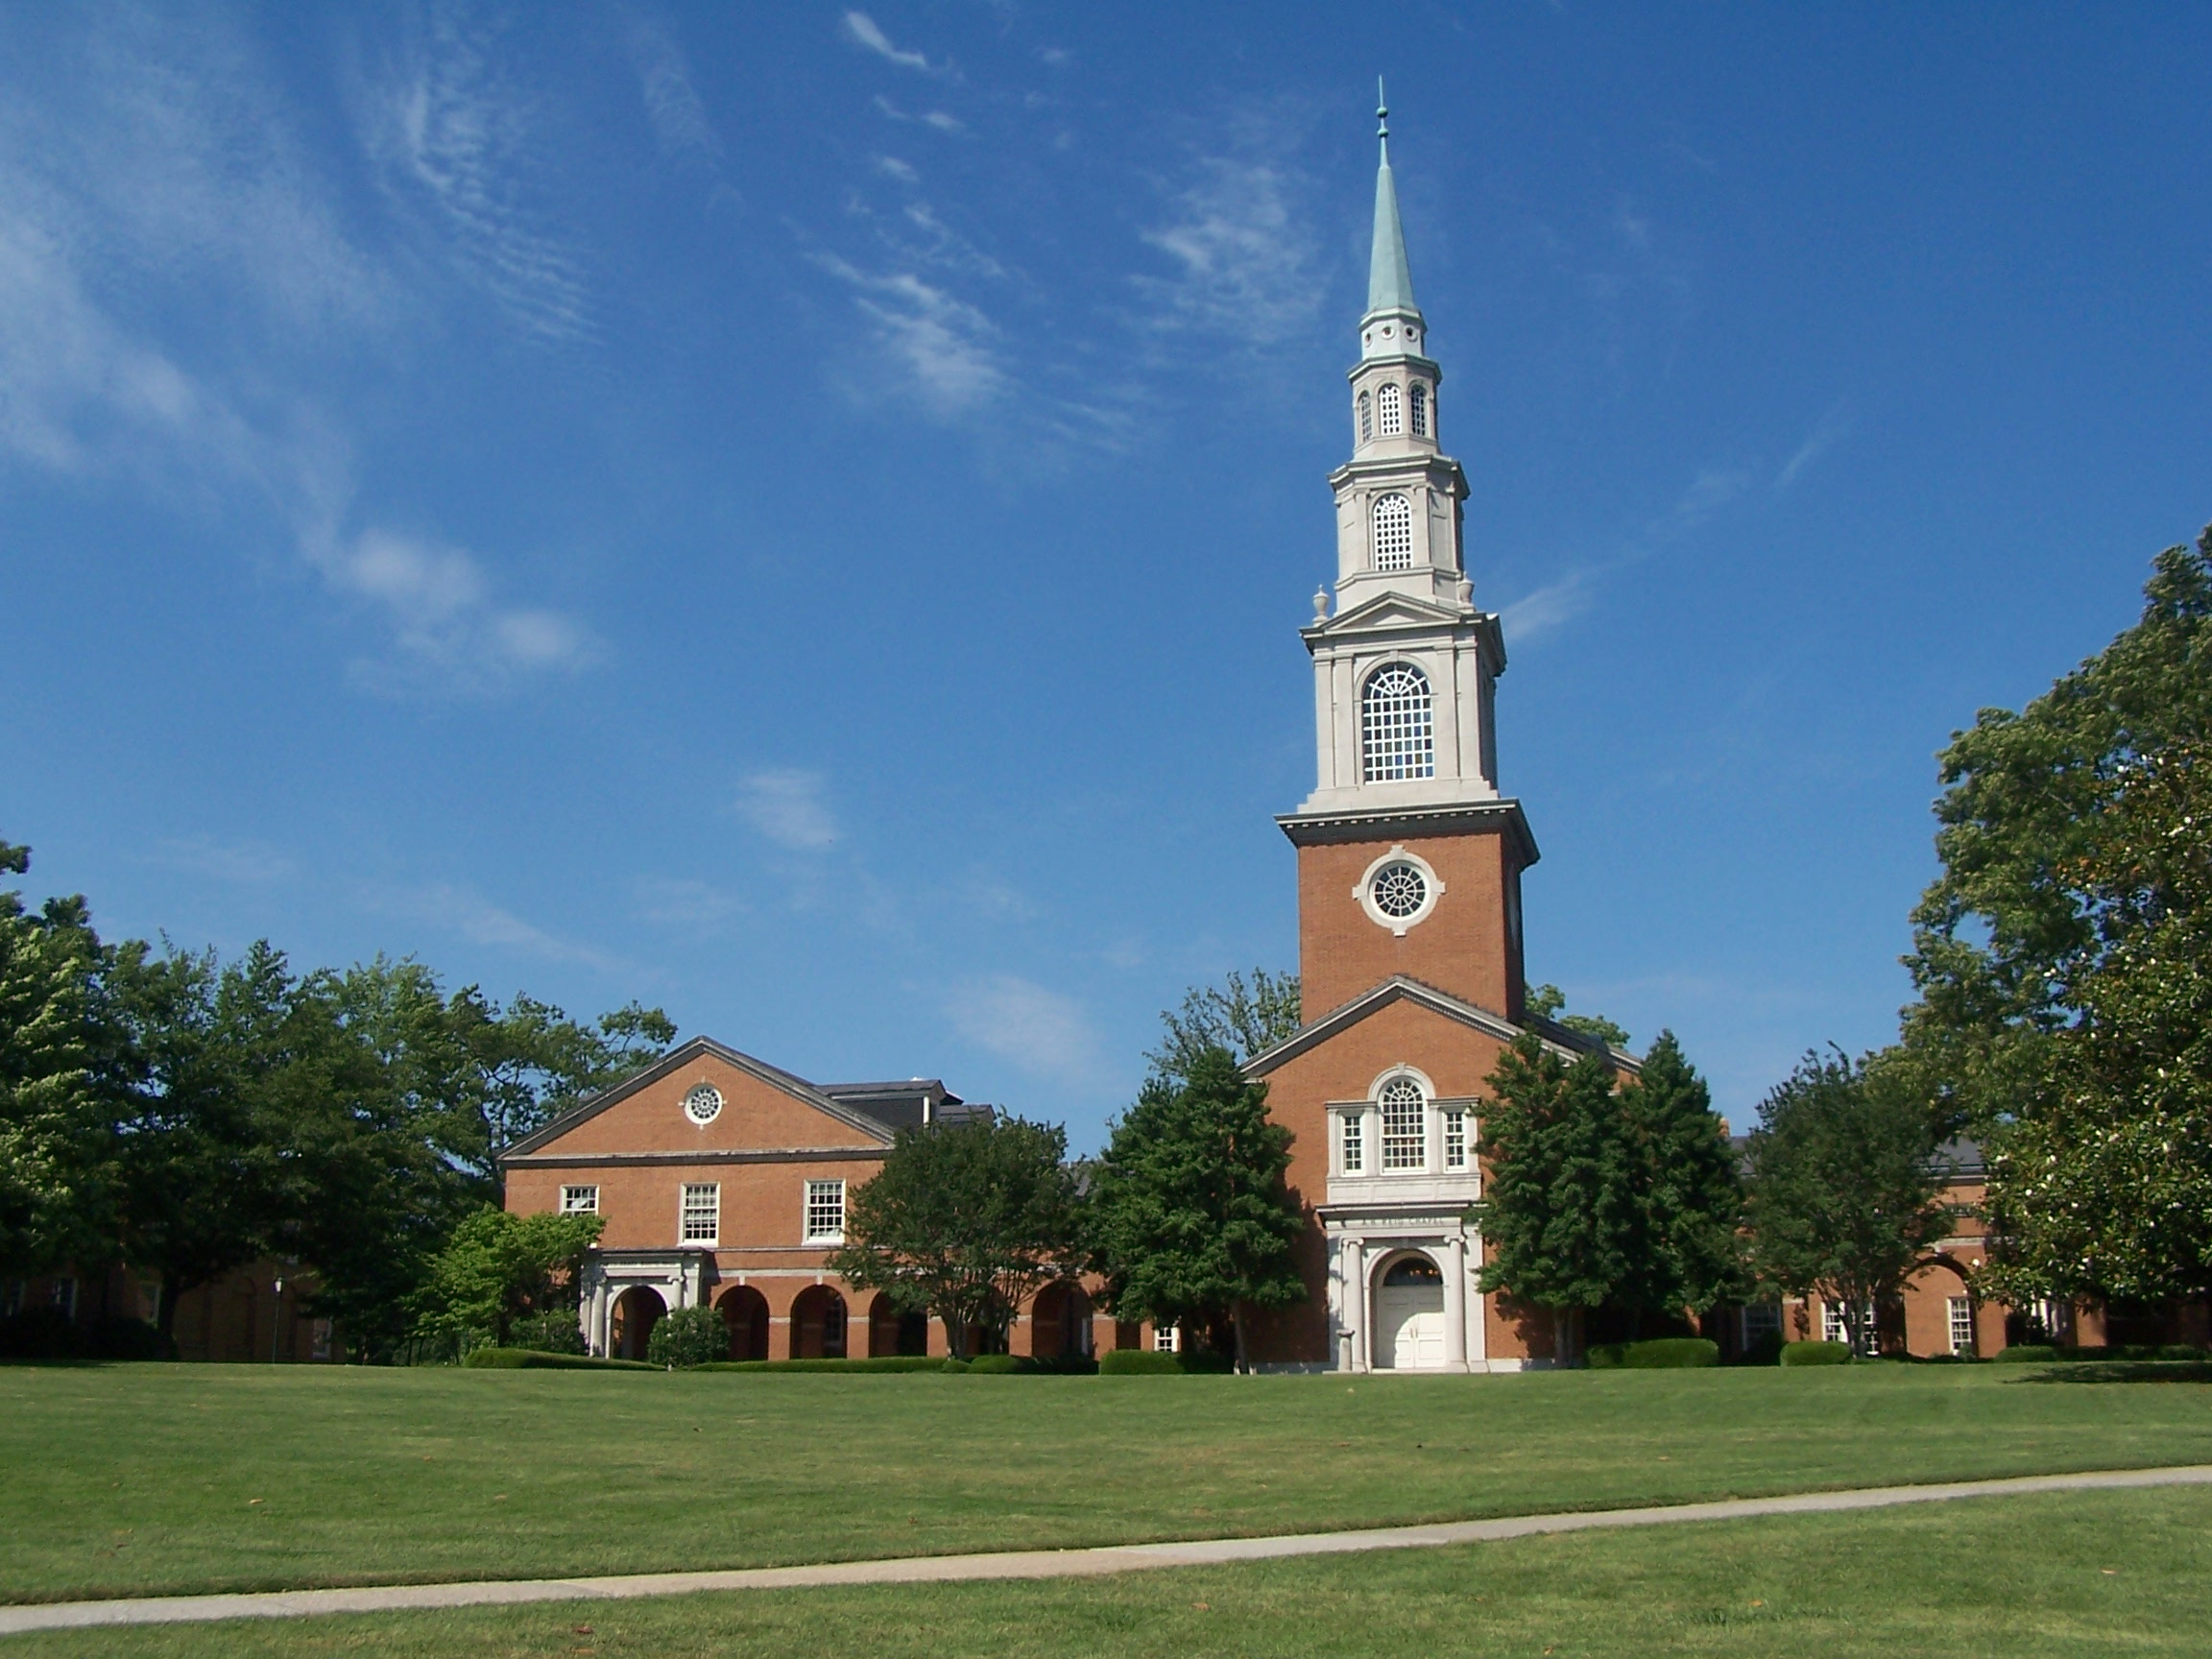 File:Samford University Reid Chapel.JPG - Wikipedia, the free ...